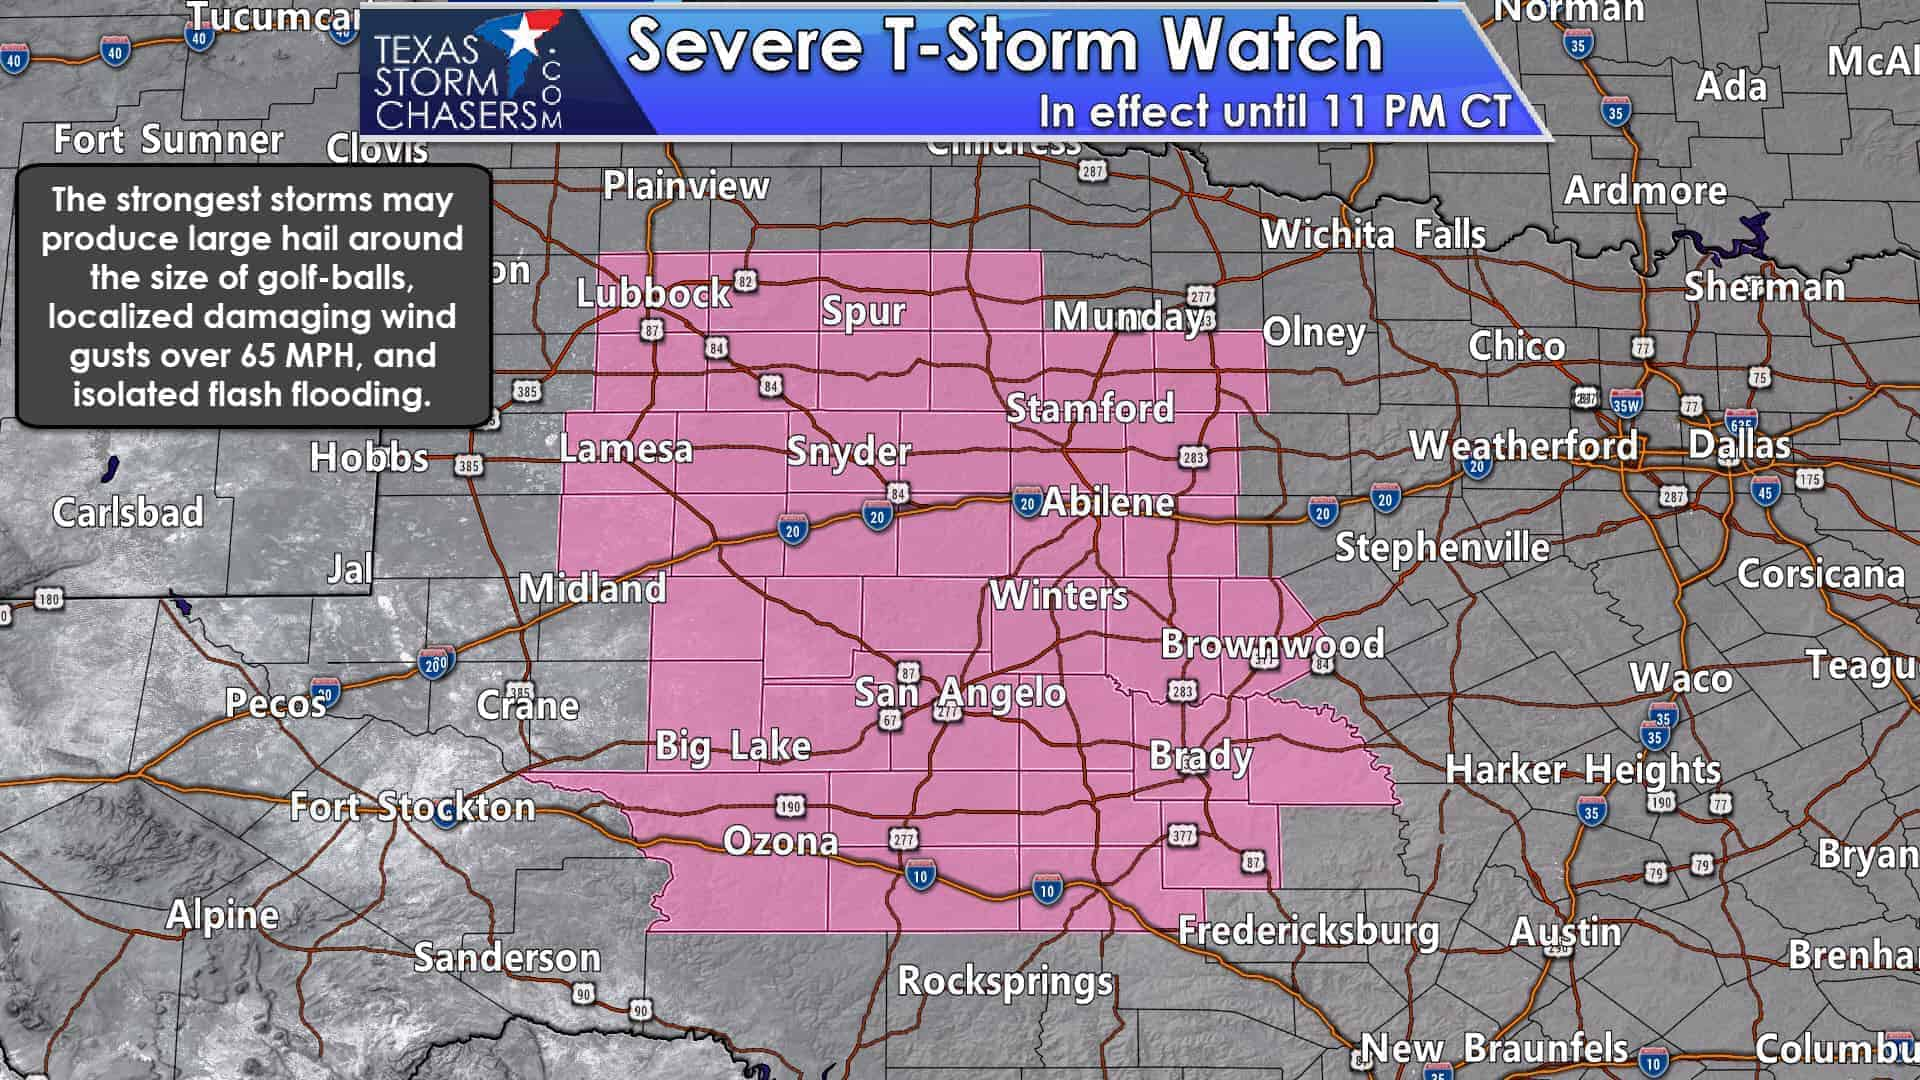 Severe storms developing in West Texas, Big Country ... on watershed map, houston flood map, tampa bay flooding map, austin flood damage map, katy flooding map, manhattan flooding map, pensacola flooding map, sioux falls flooding map, colorado flooding map, texas flood zone map, brazos river flooding map, prone flooding texas map, harris county flooding map,